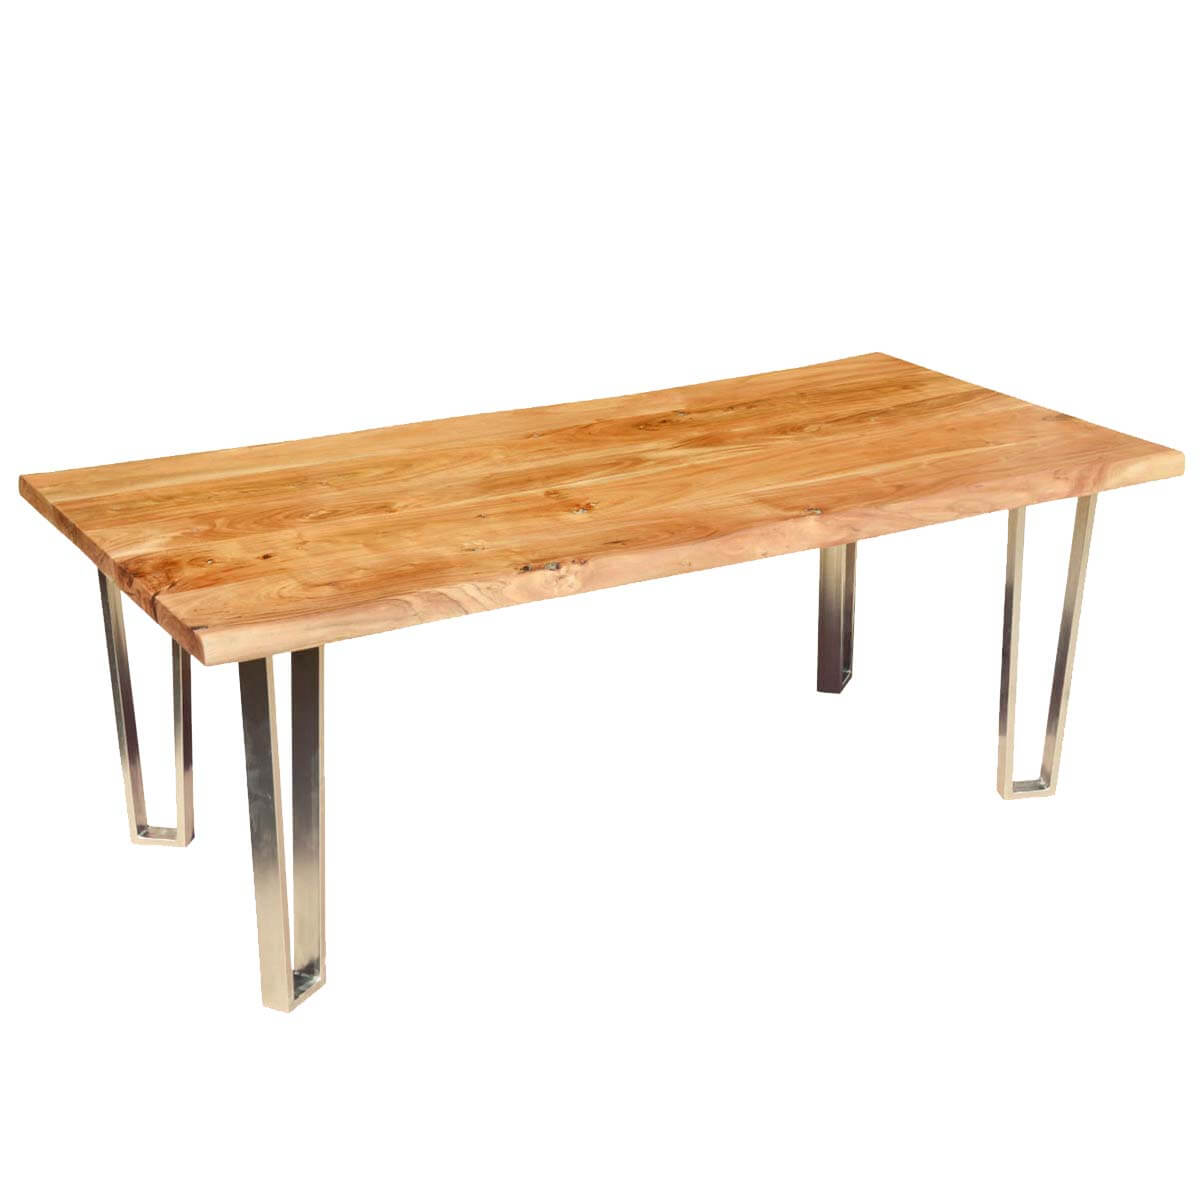 Solid Wood amp Iron Rustic Live Edge Dining Table : 56082 from sierralivingconcepts.com size 1200 x 1200 jpeg 67kB